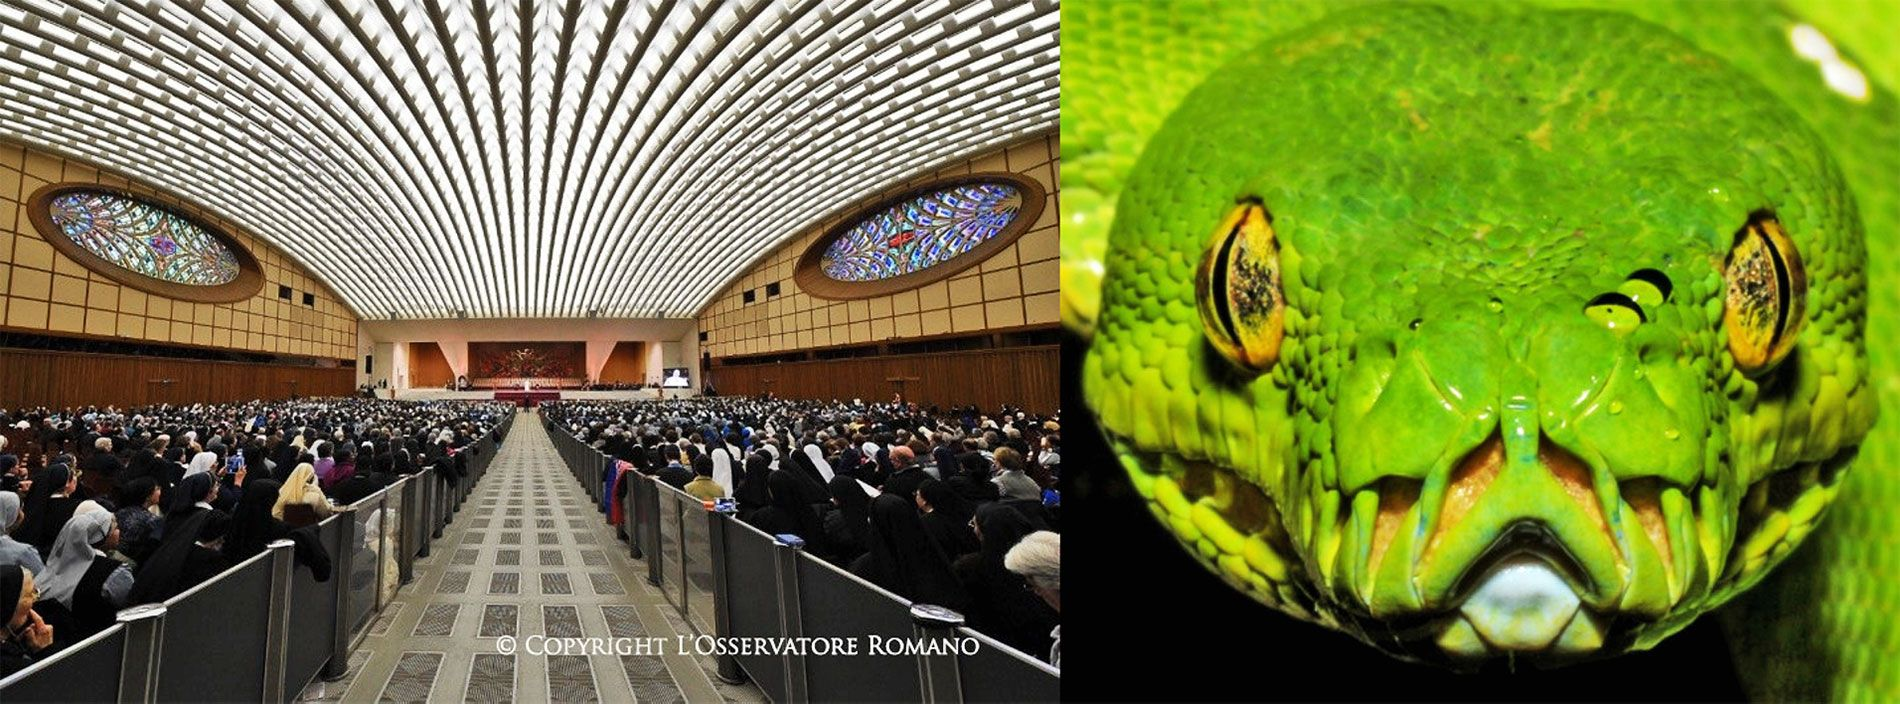 """Pope Francis against \'fake news\': """"We need to unmask snake-tactics ..."""